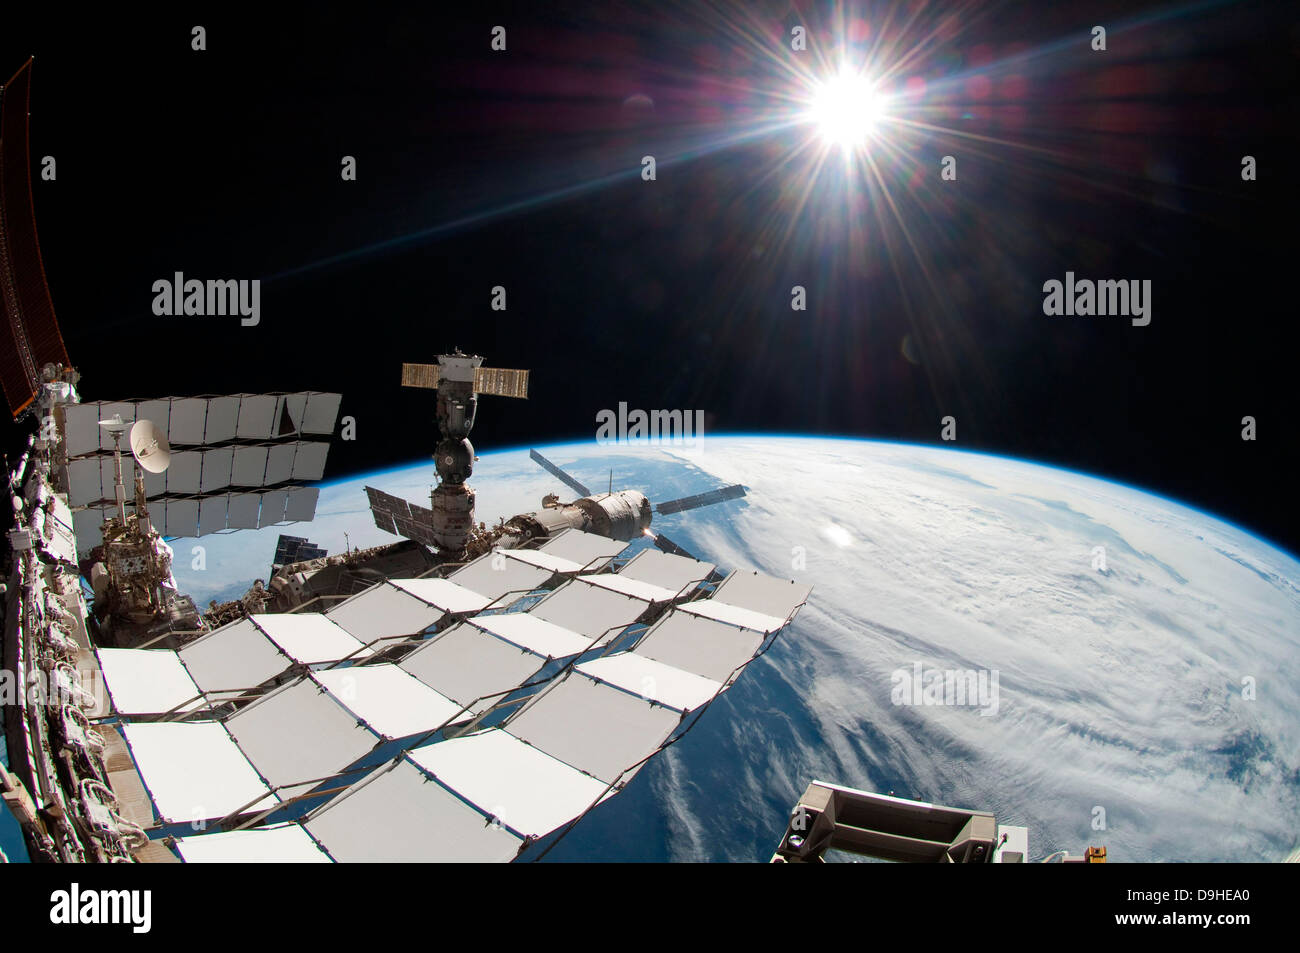 The bright sun, a portion of the International Space Station and Earth's horizon. - Stock Image